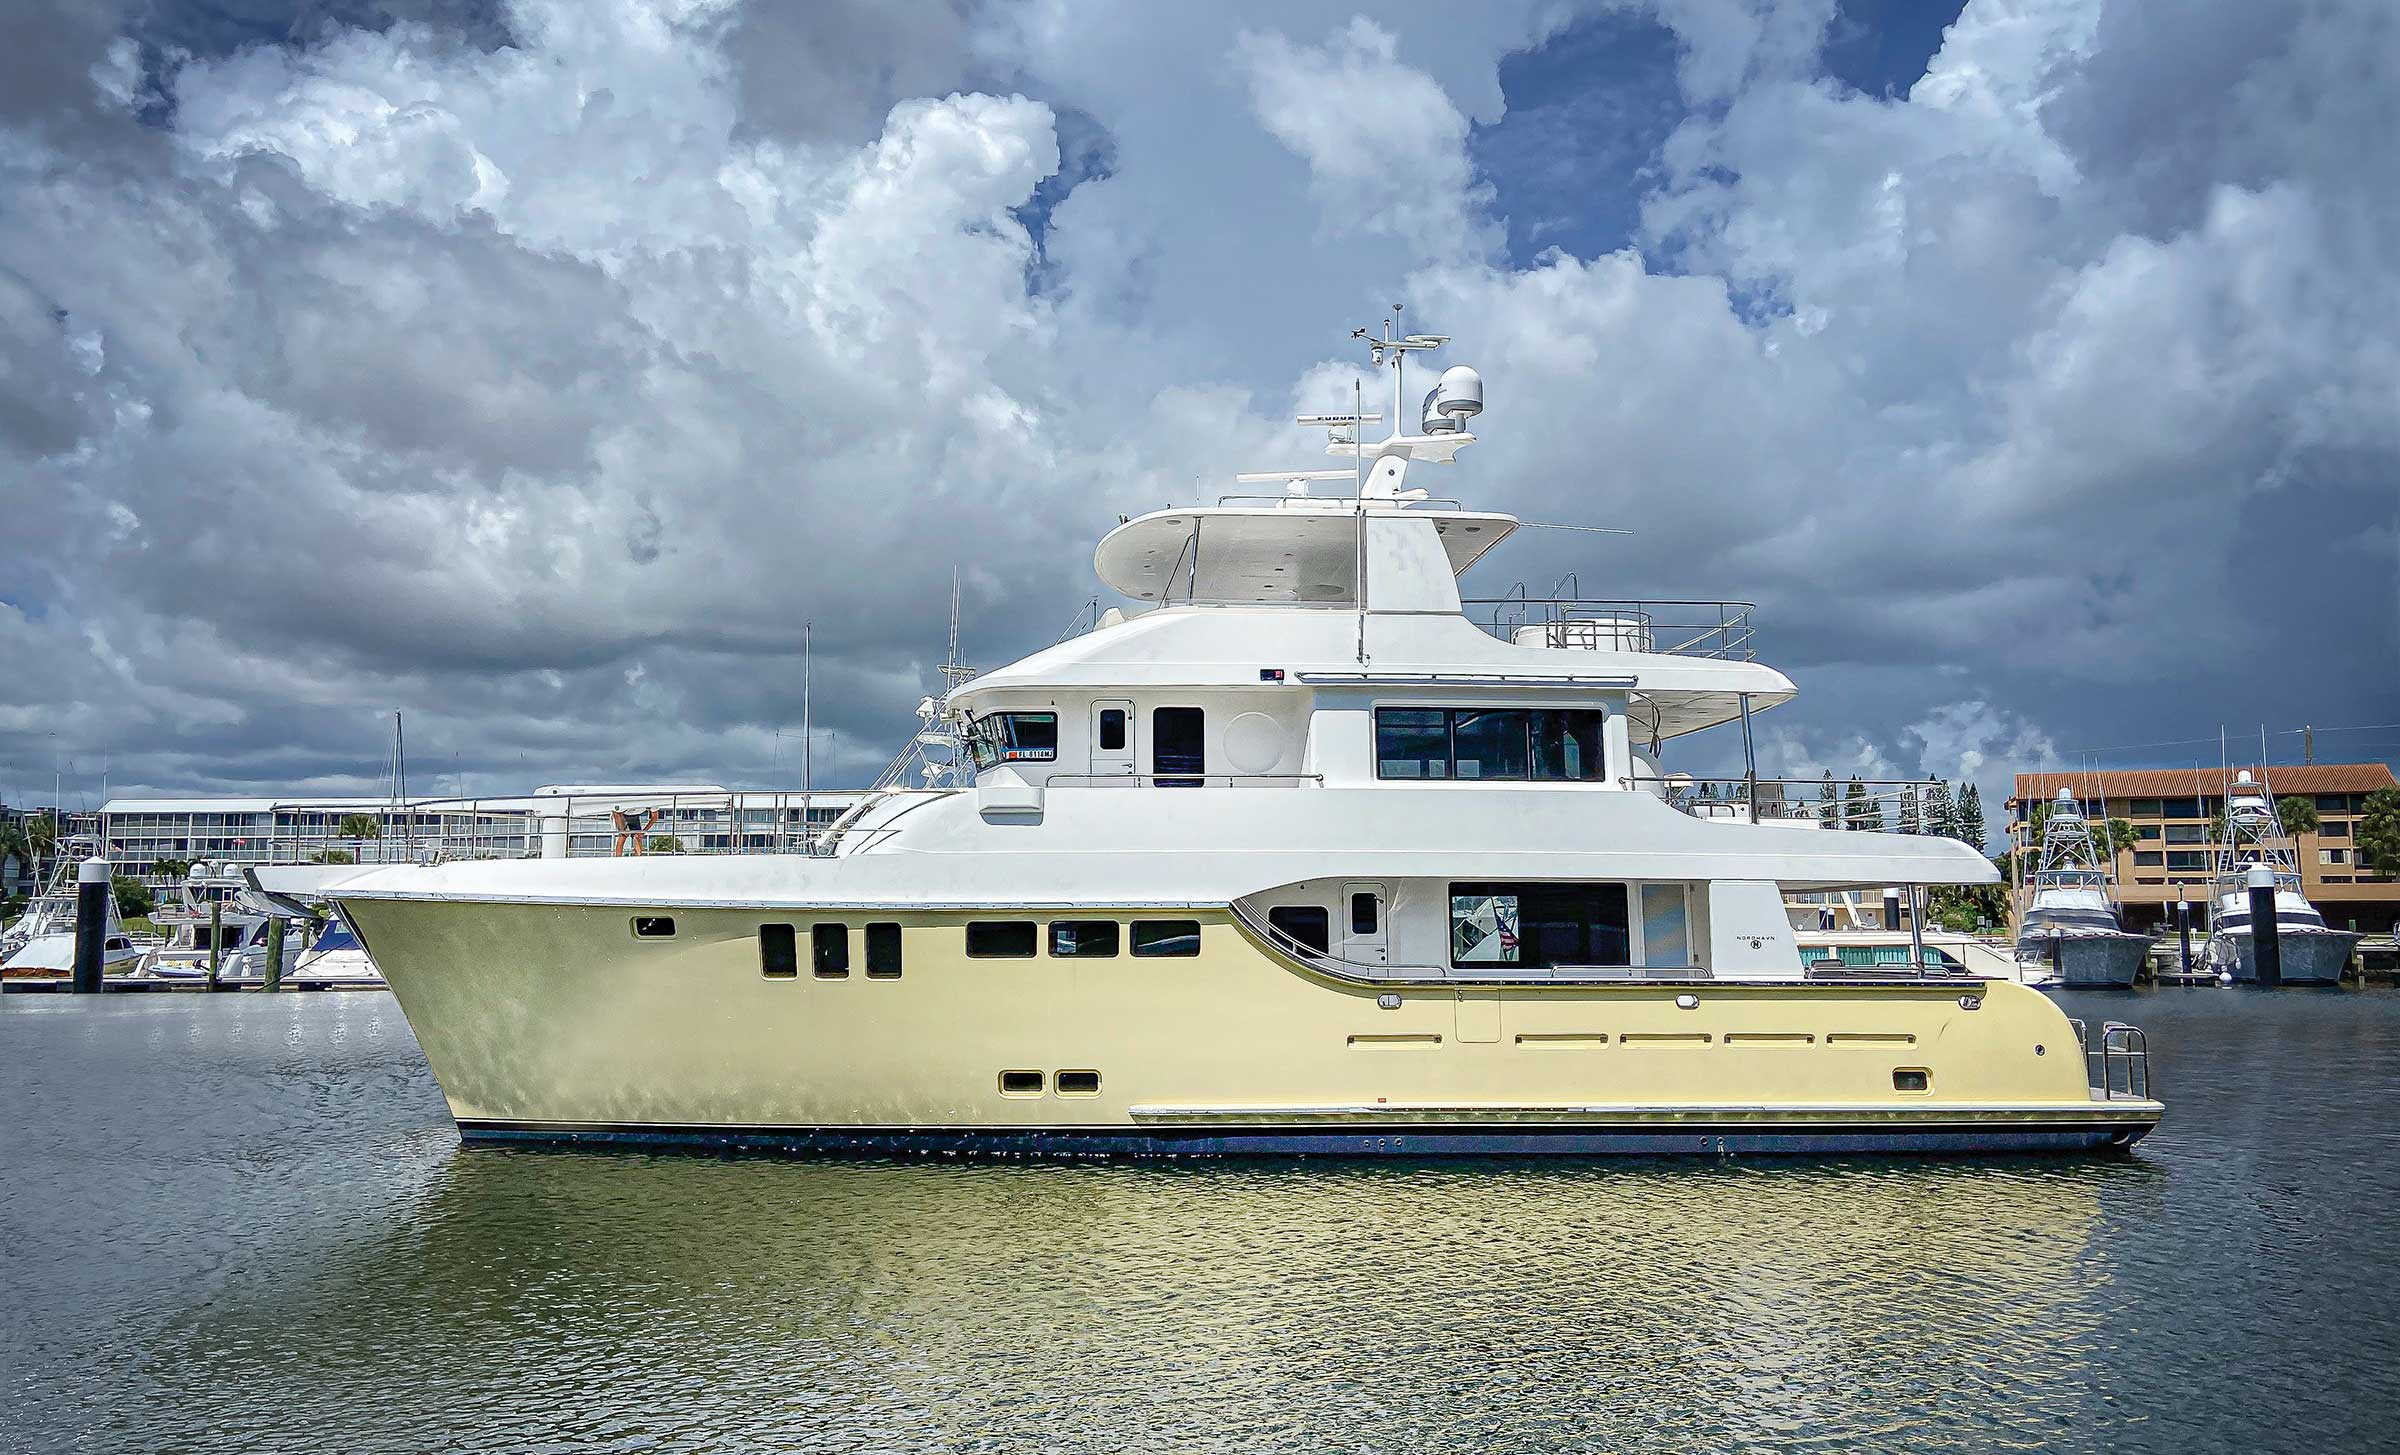 N8001 will be on display at FLIBS